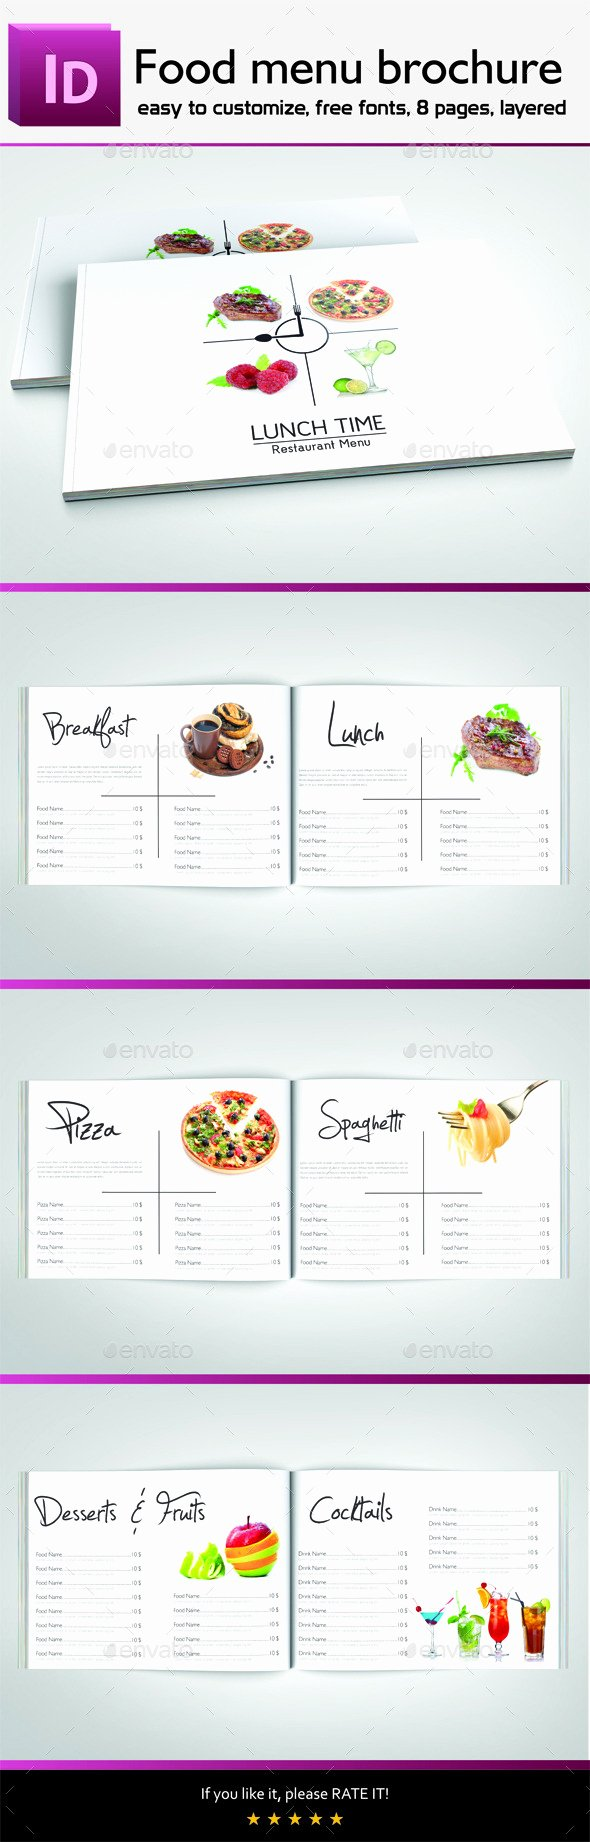 Indesign Menu Template Free Luxury Indesign Templates for Restaurant Menu for Free Dondrup